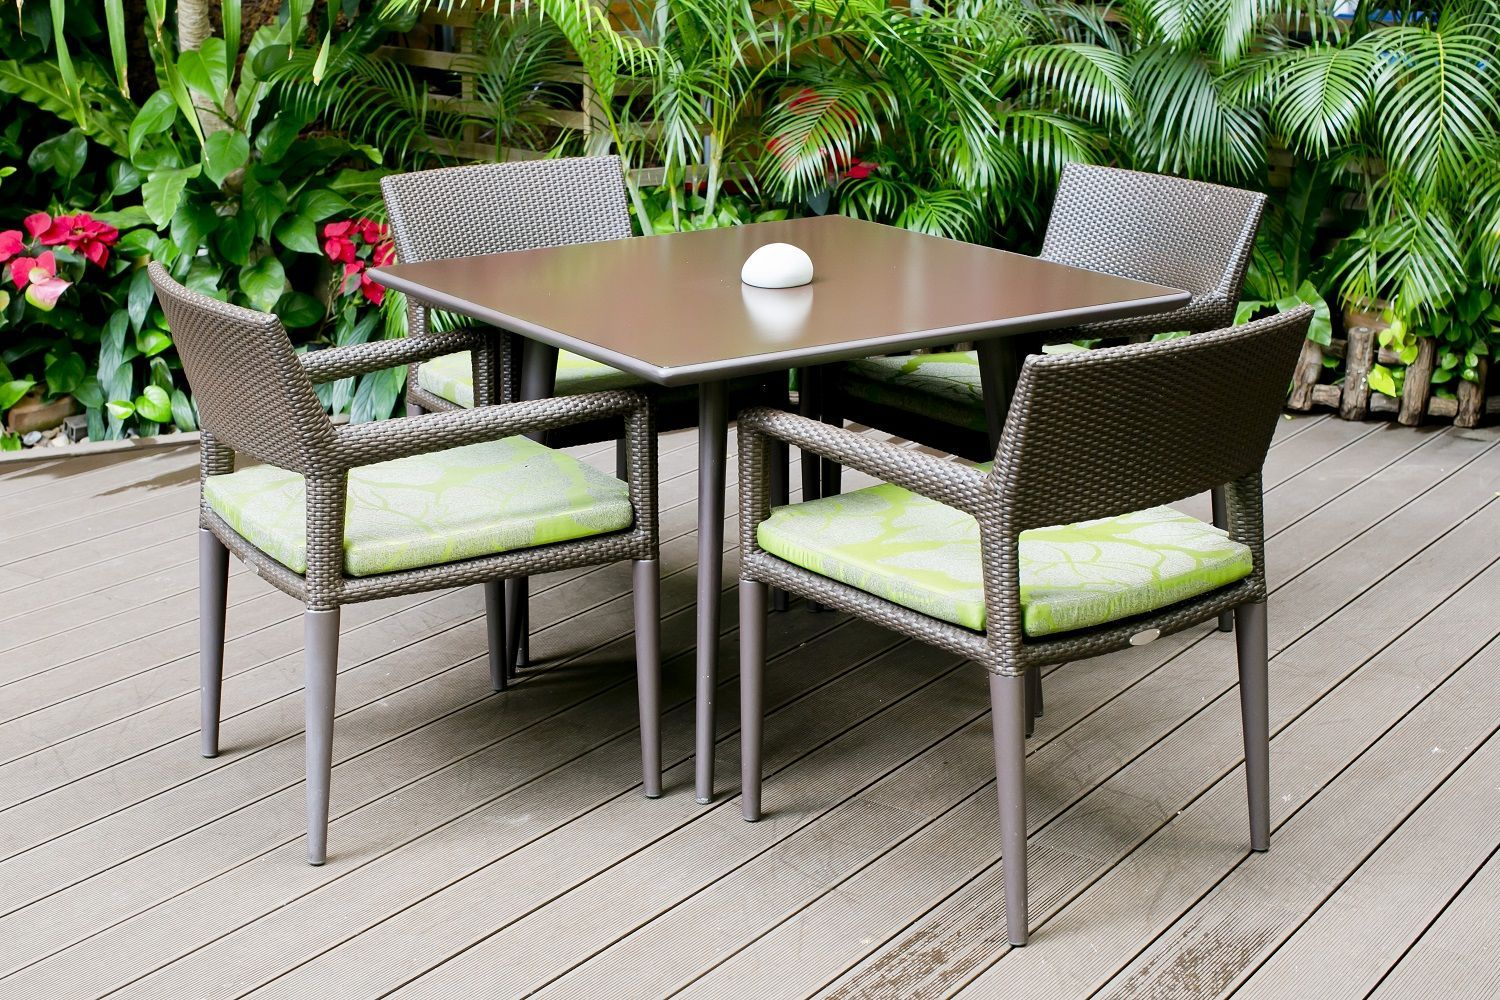 Home garden furniture  decorate your home with garden furniture they design in garden